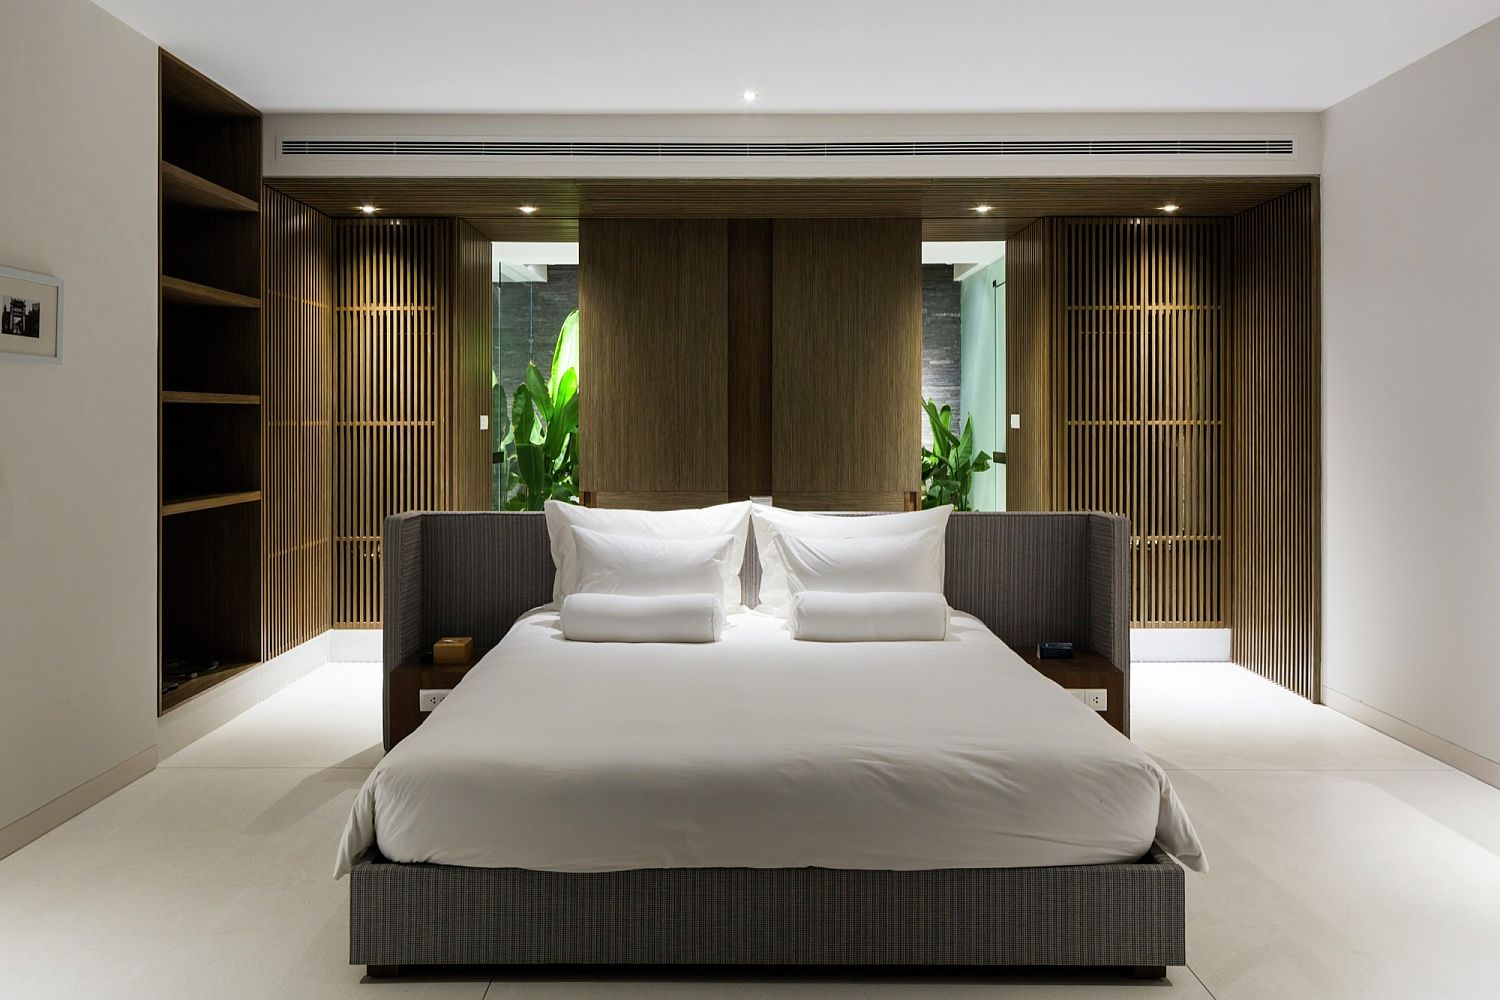 Natural-wooden-finishes-combined-with-white-inside-the-bedrooms